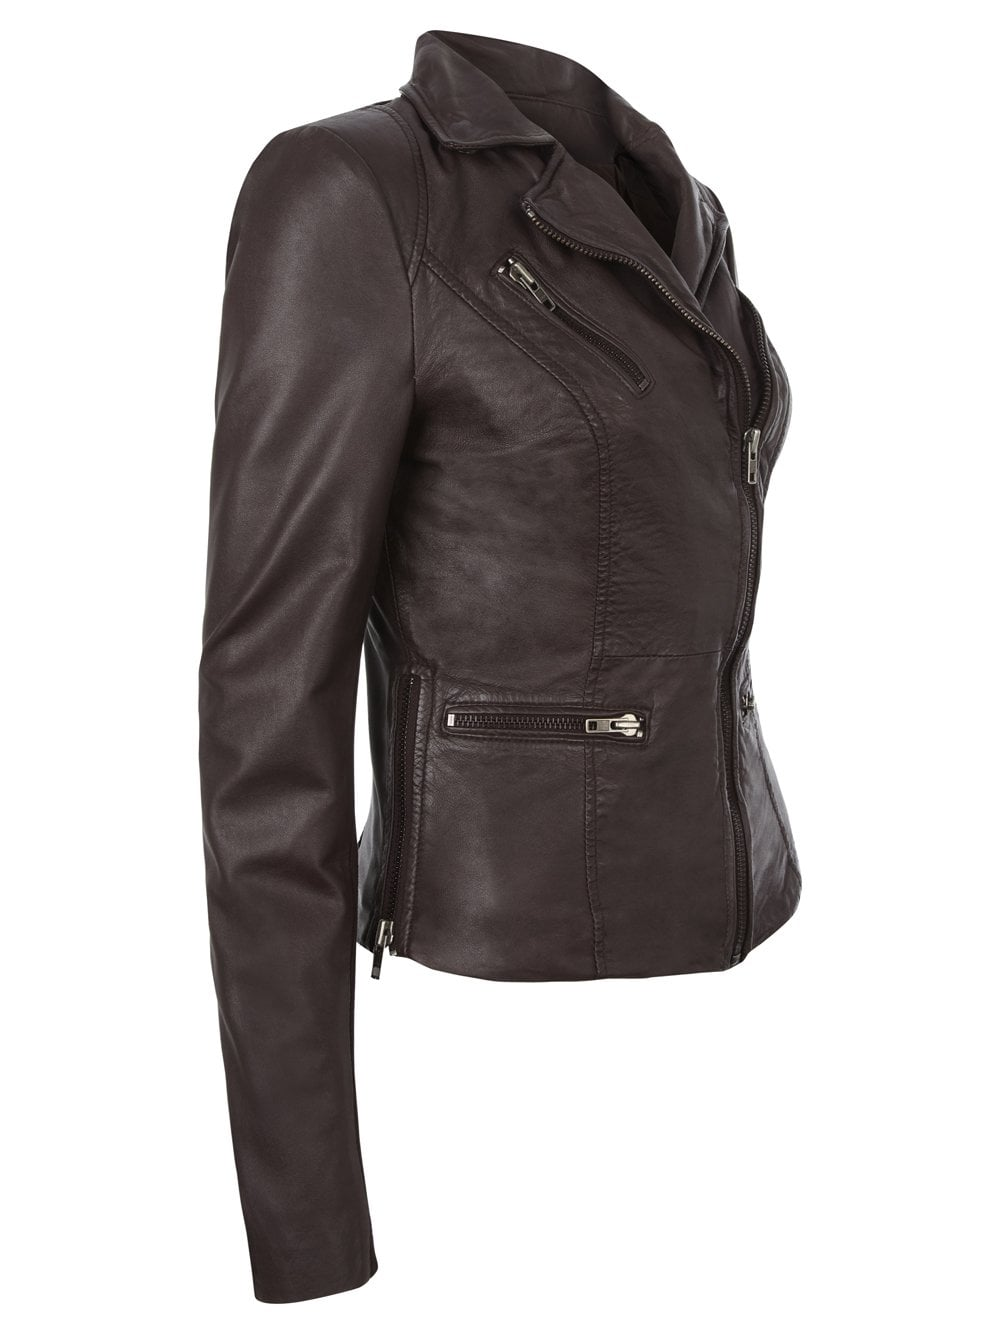 Muubaa Sirius Brown Leather Biker Jacket